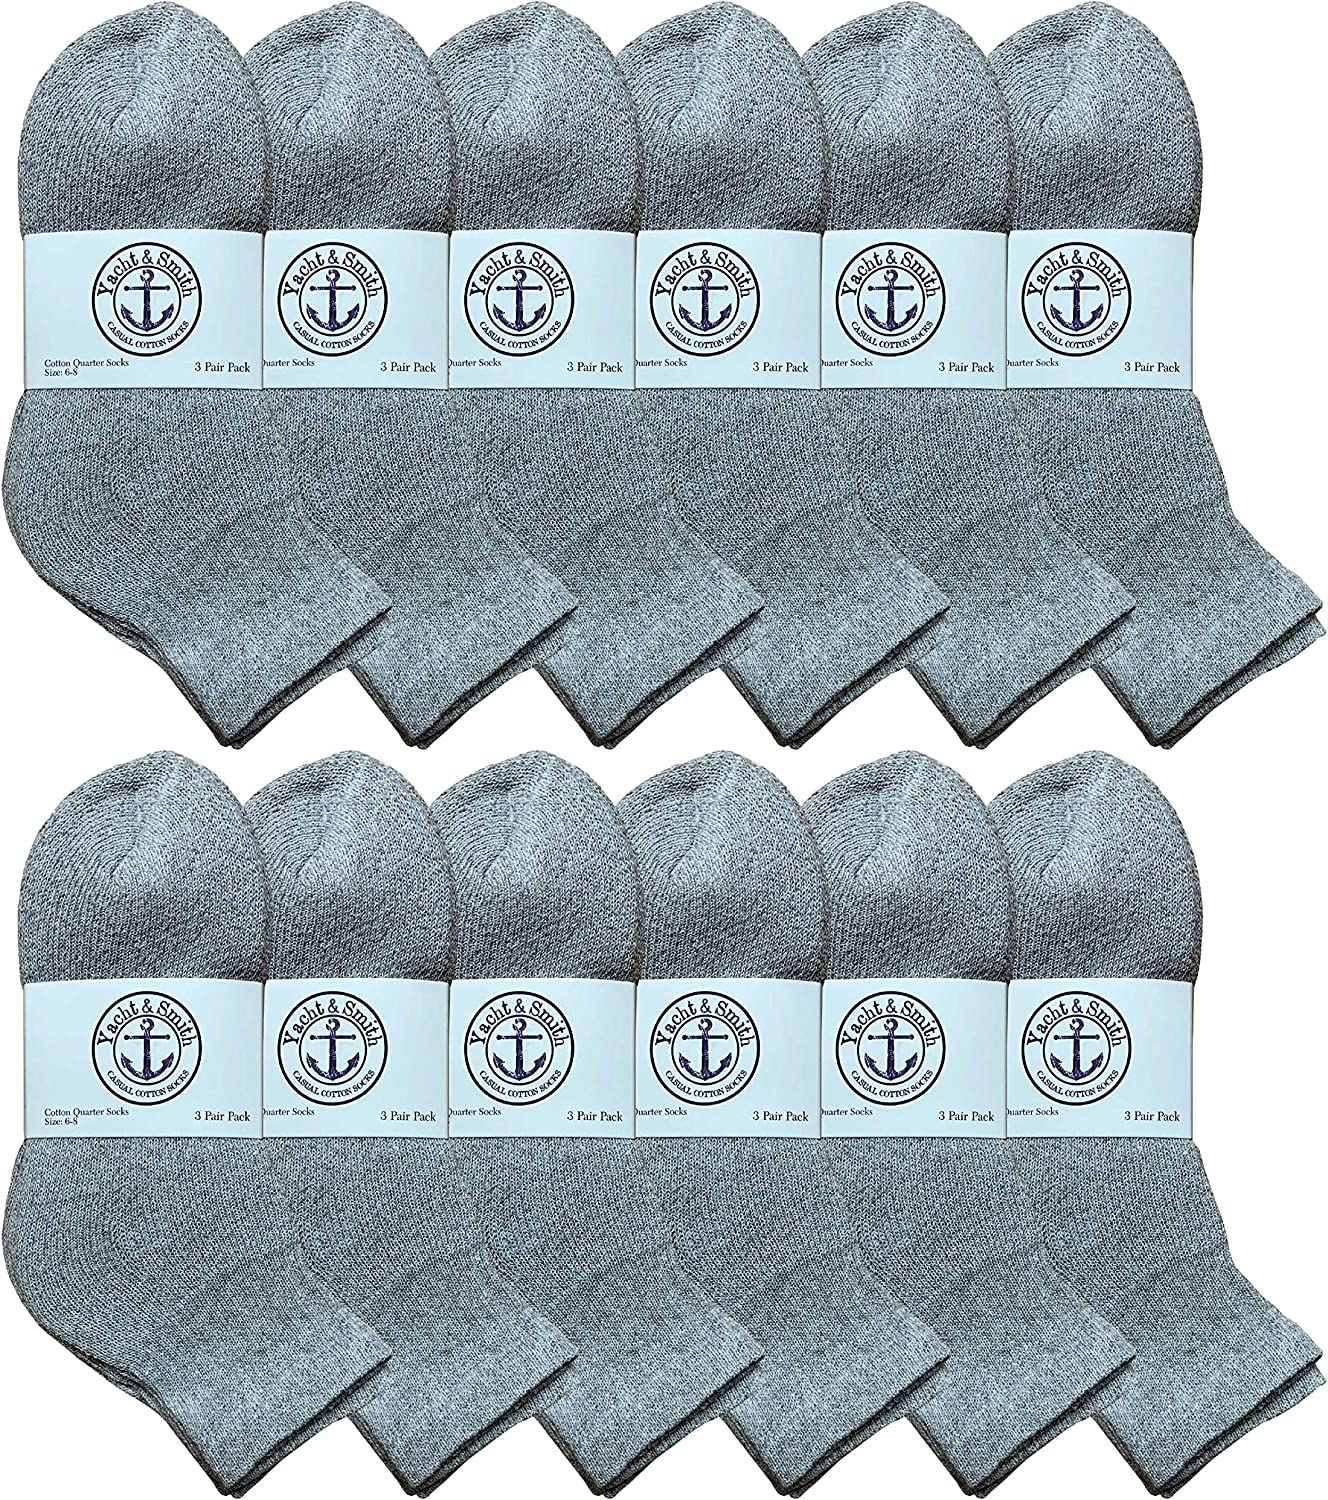 Yacht & Smith 12 Pairs Of Cotton Mid Size Ankle Socks Boys And Girls Bulk Value Pack Socks